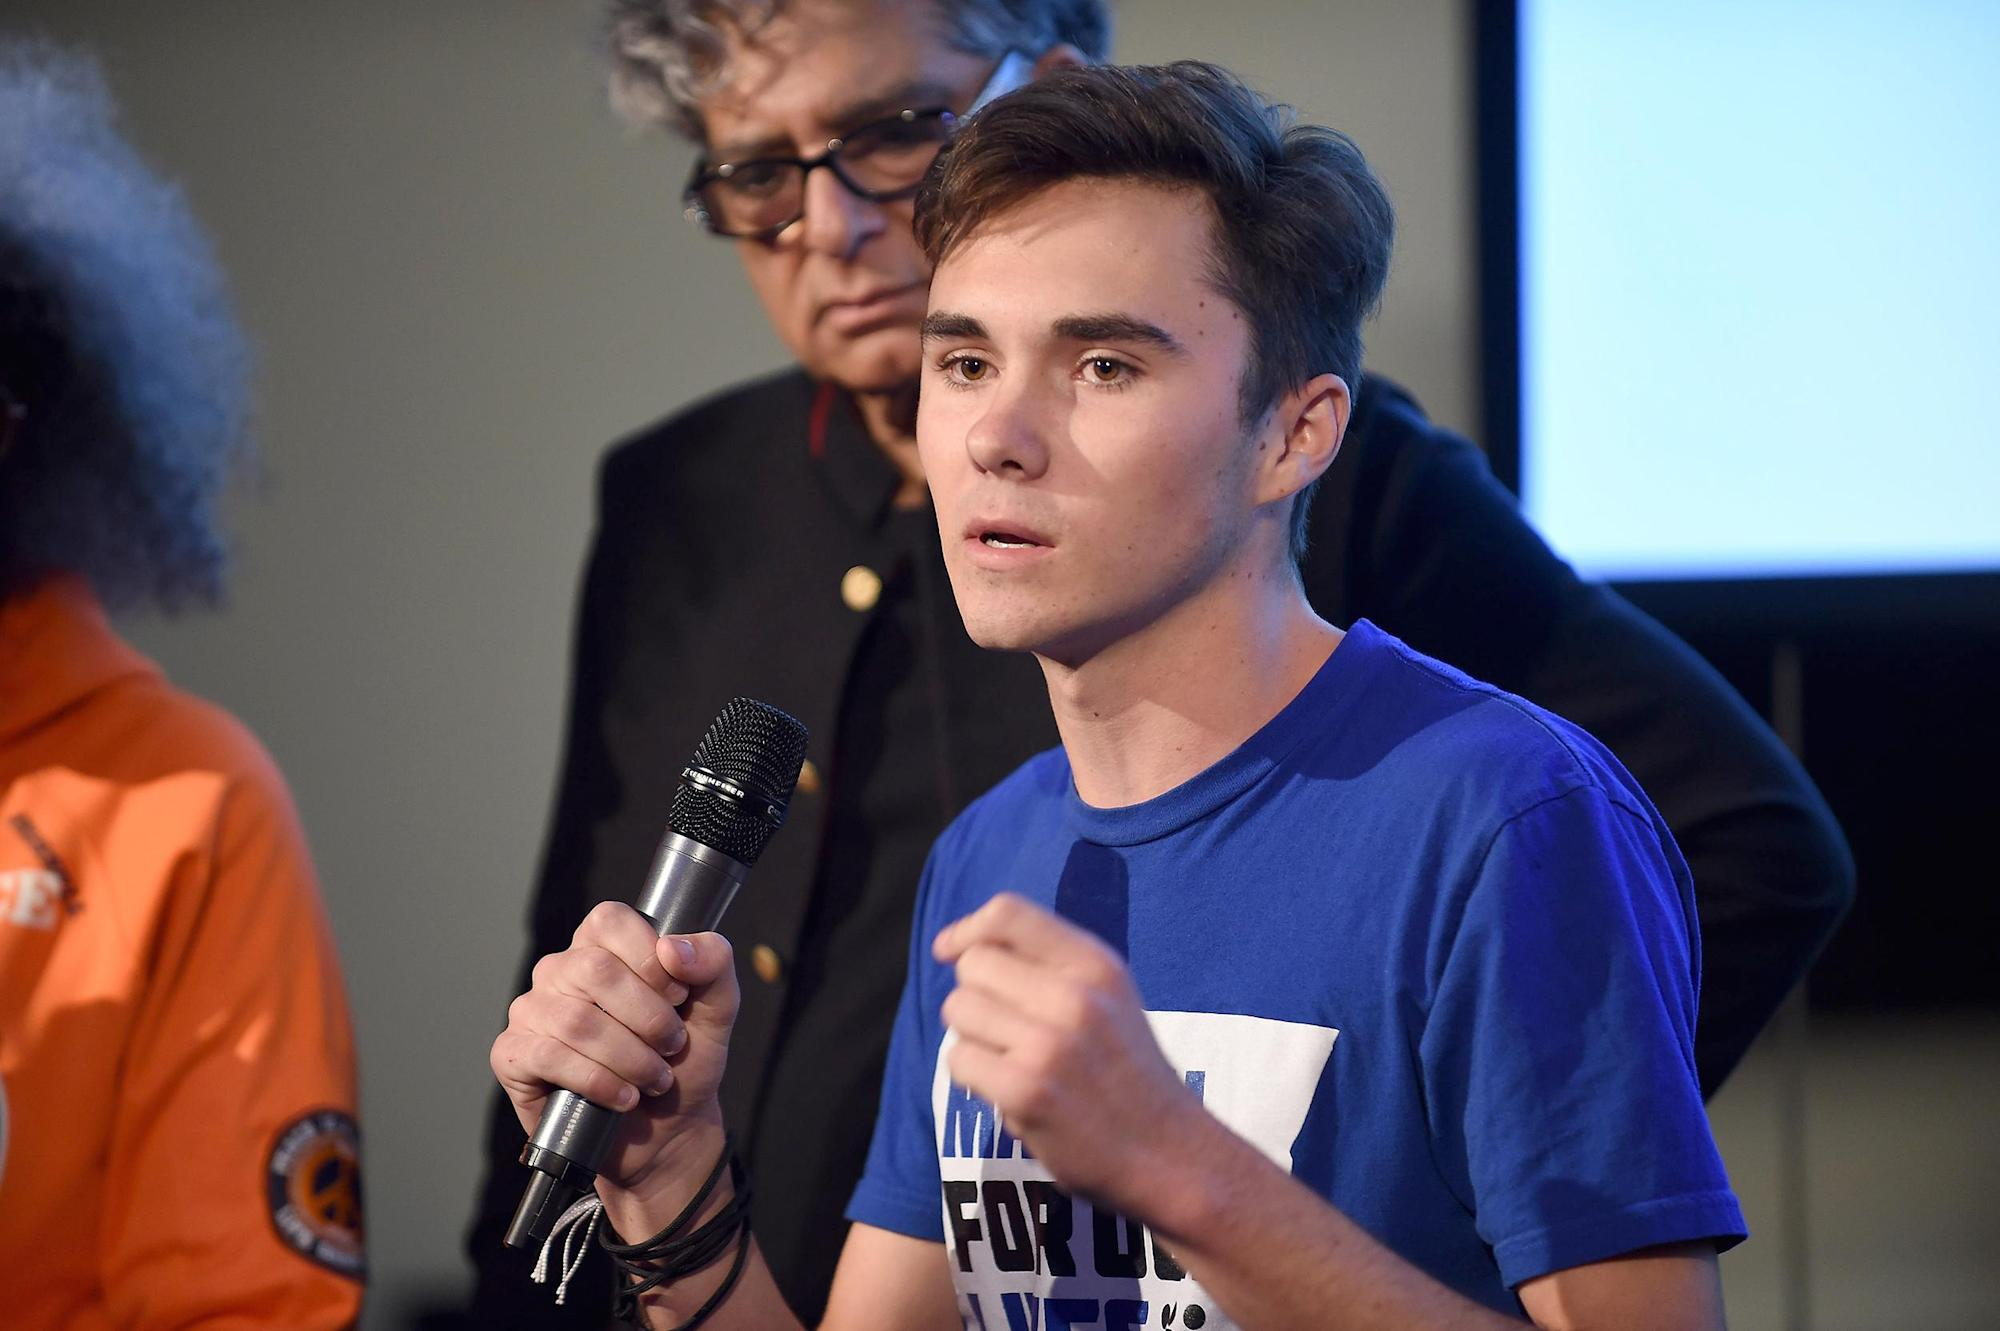 David Hogg launching pillow company to 'put MyPillow out of business' thumbnail